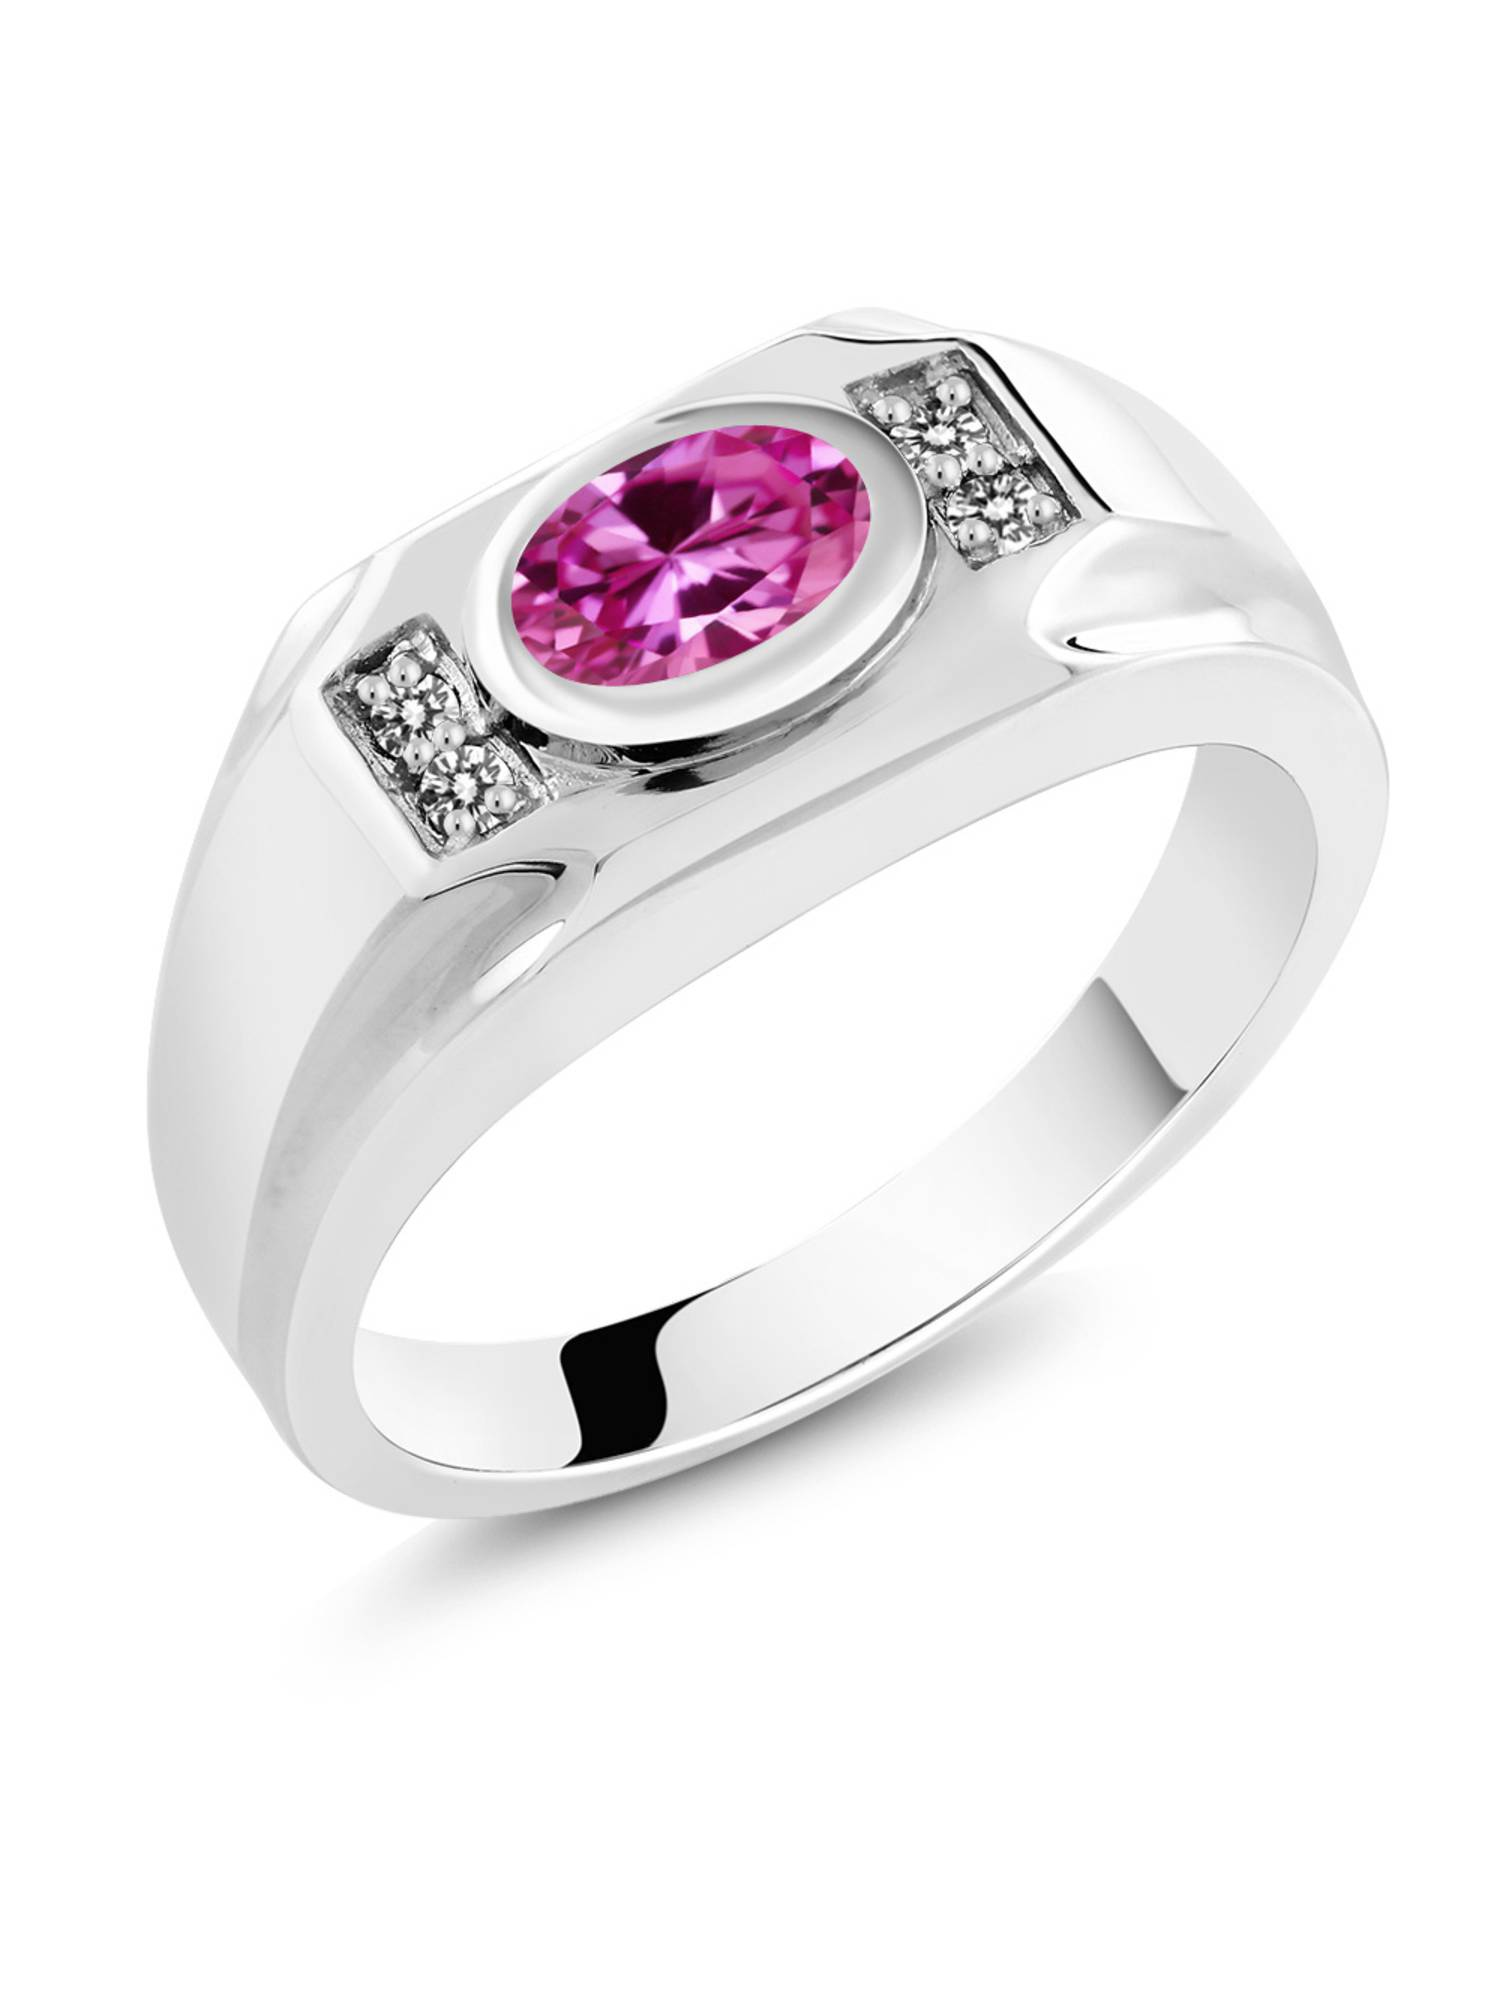 Gem Stone King 1.78 Ct Oval Pink Created Sapphire White Diamond 925 Sterling Silver Mens Ring